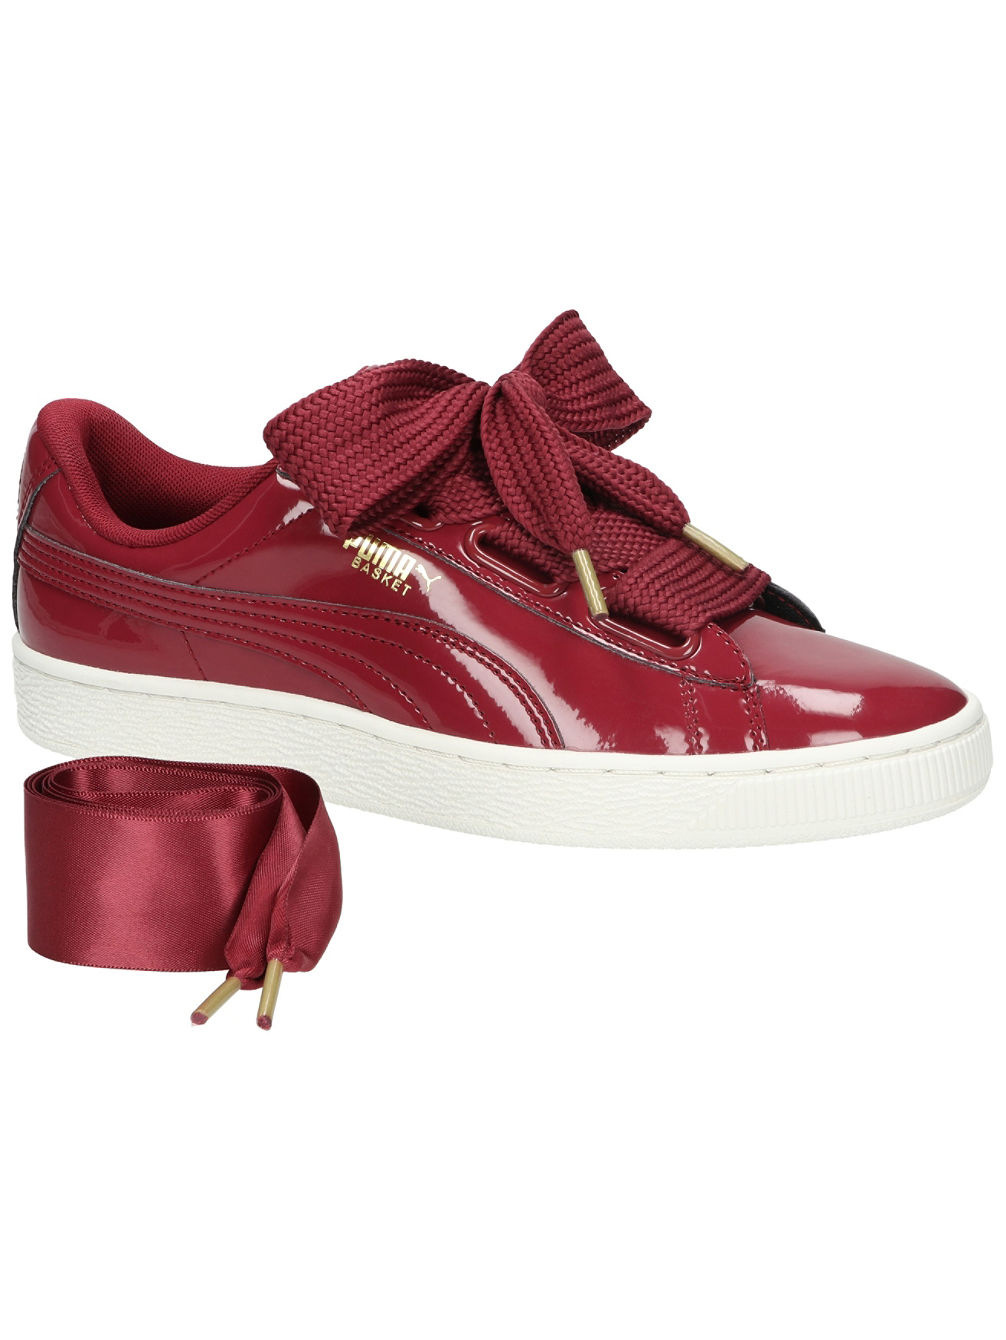 los angeles 4f080 ffa8a Basket Heart Patent Sneakers